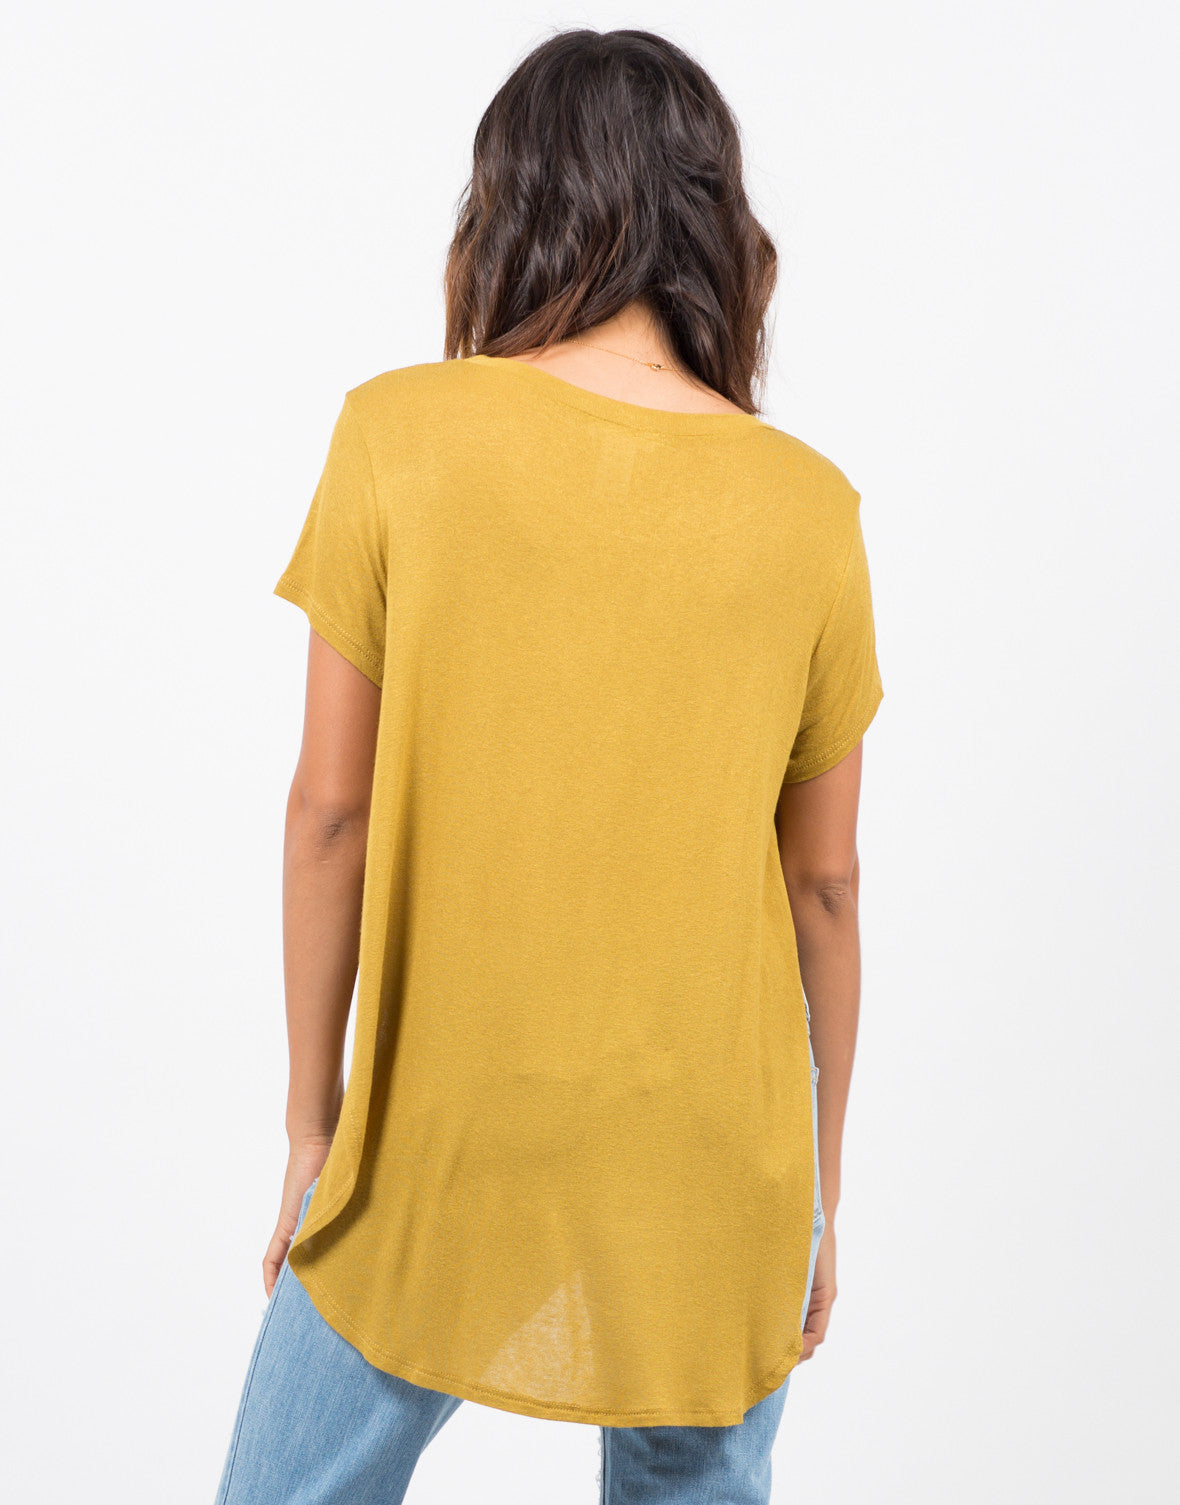 Back View of Lightweight Knit Top